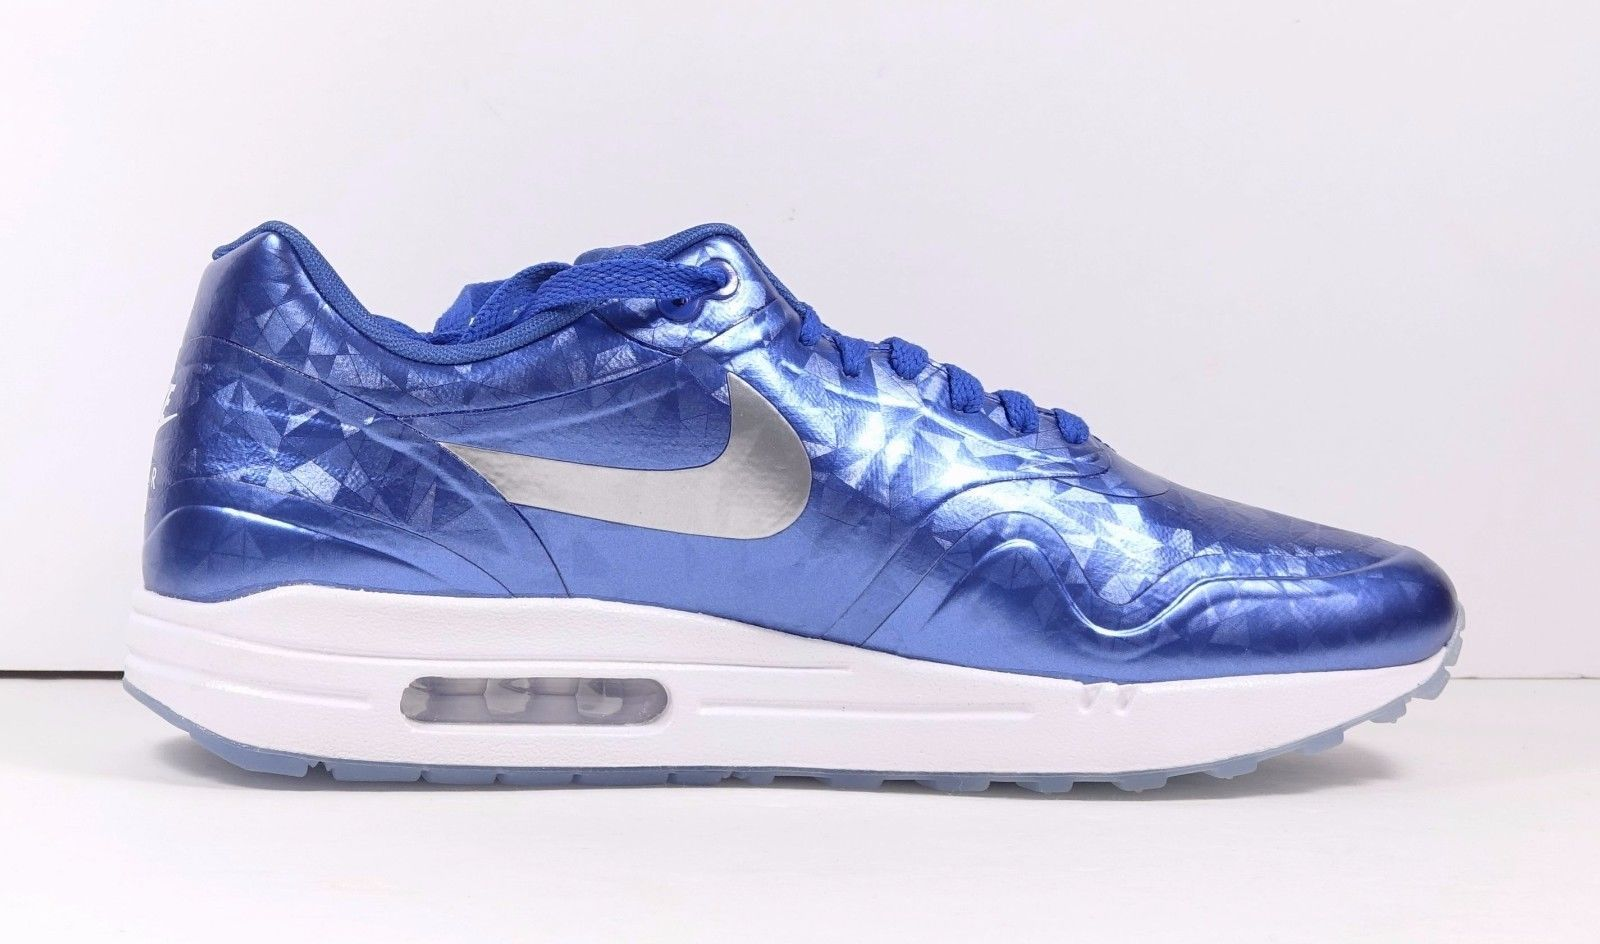 timeless design a2cf4 d0c3f Nike Air Max 1 ID Blue White Ice Sole Sz 10.5 Reflective Blue Silver White  New